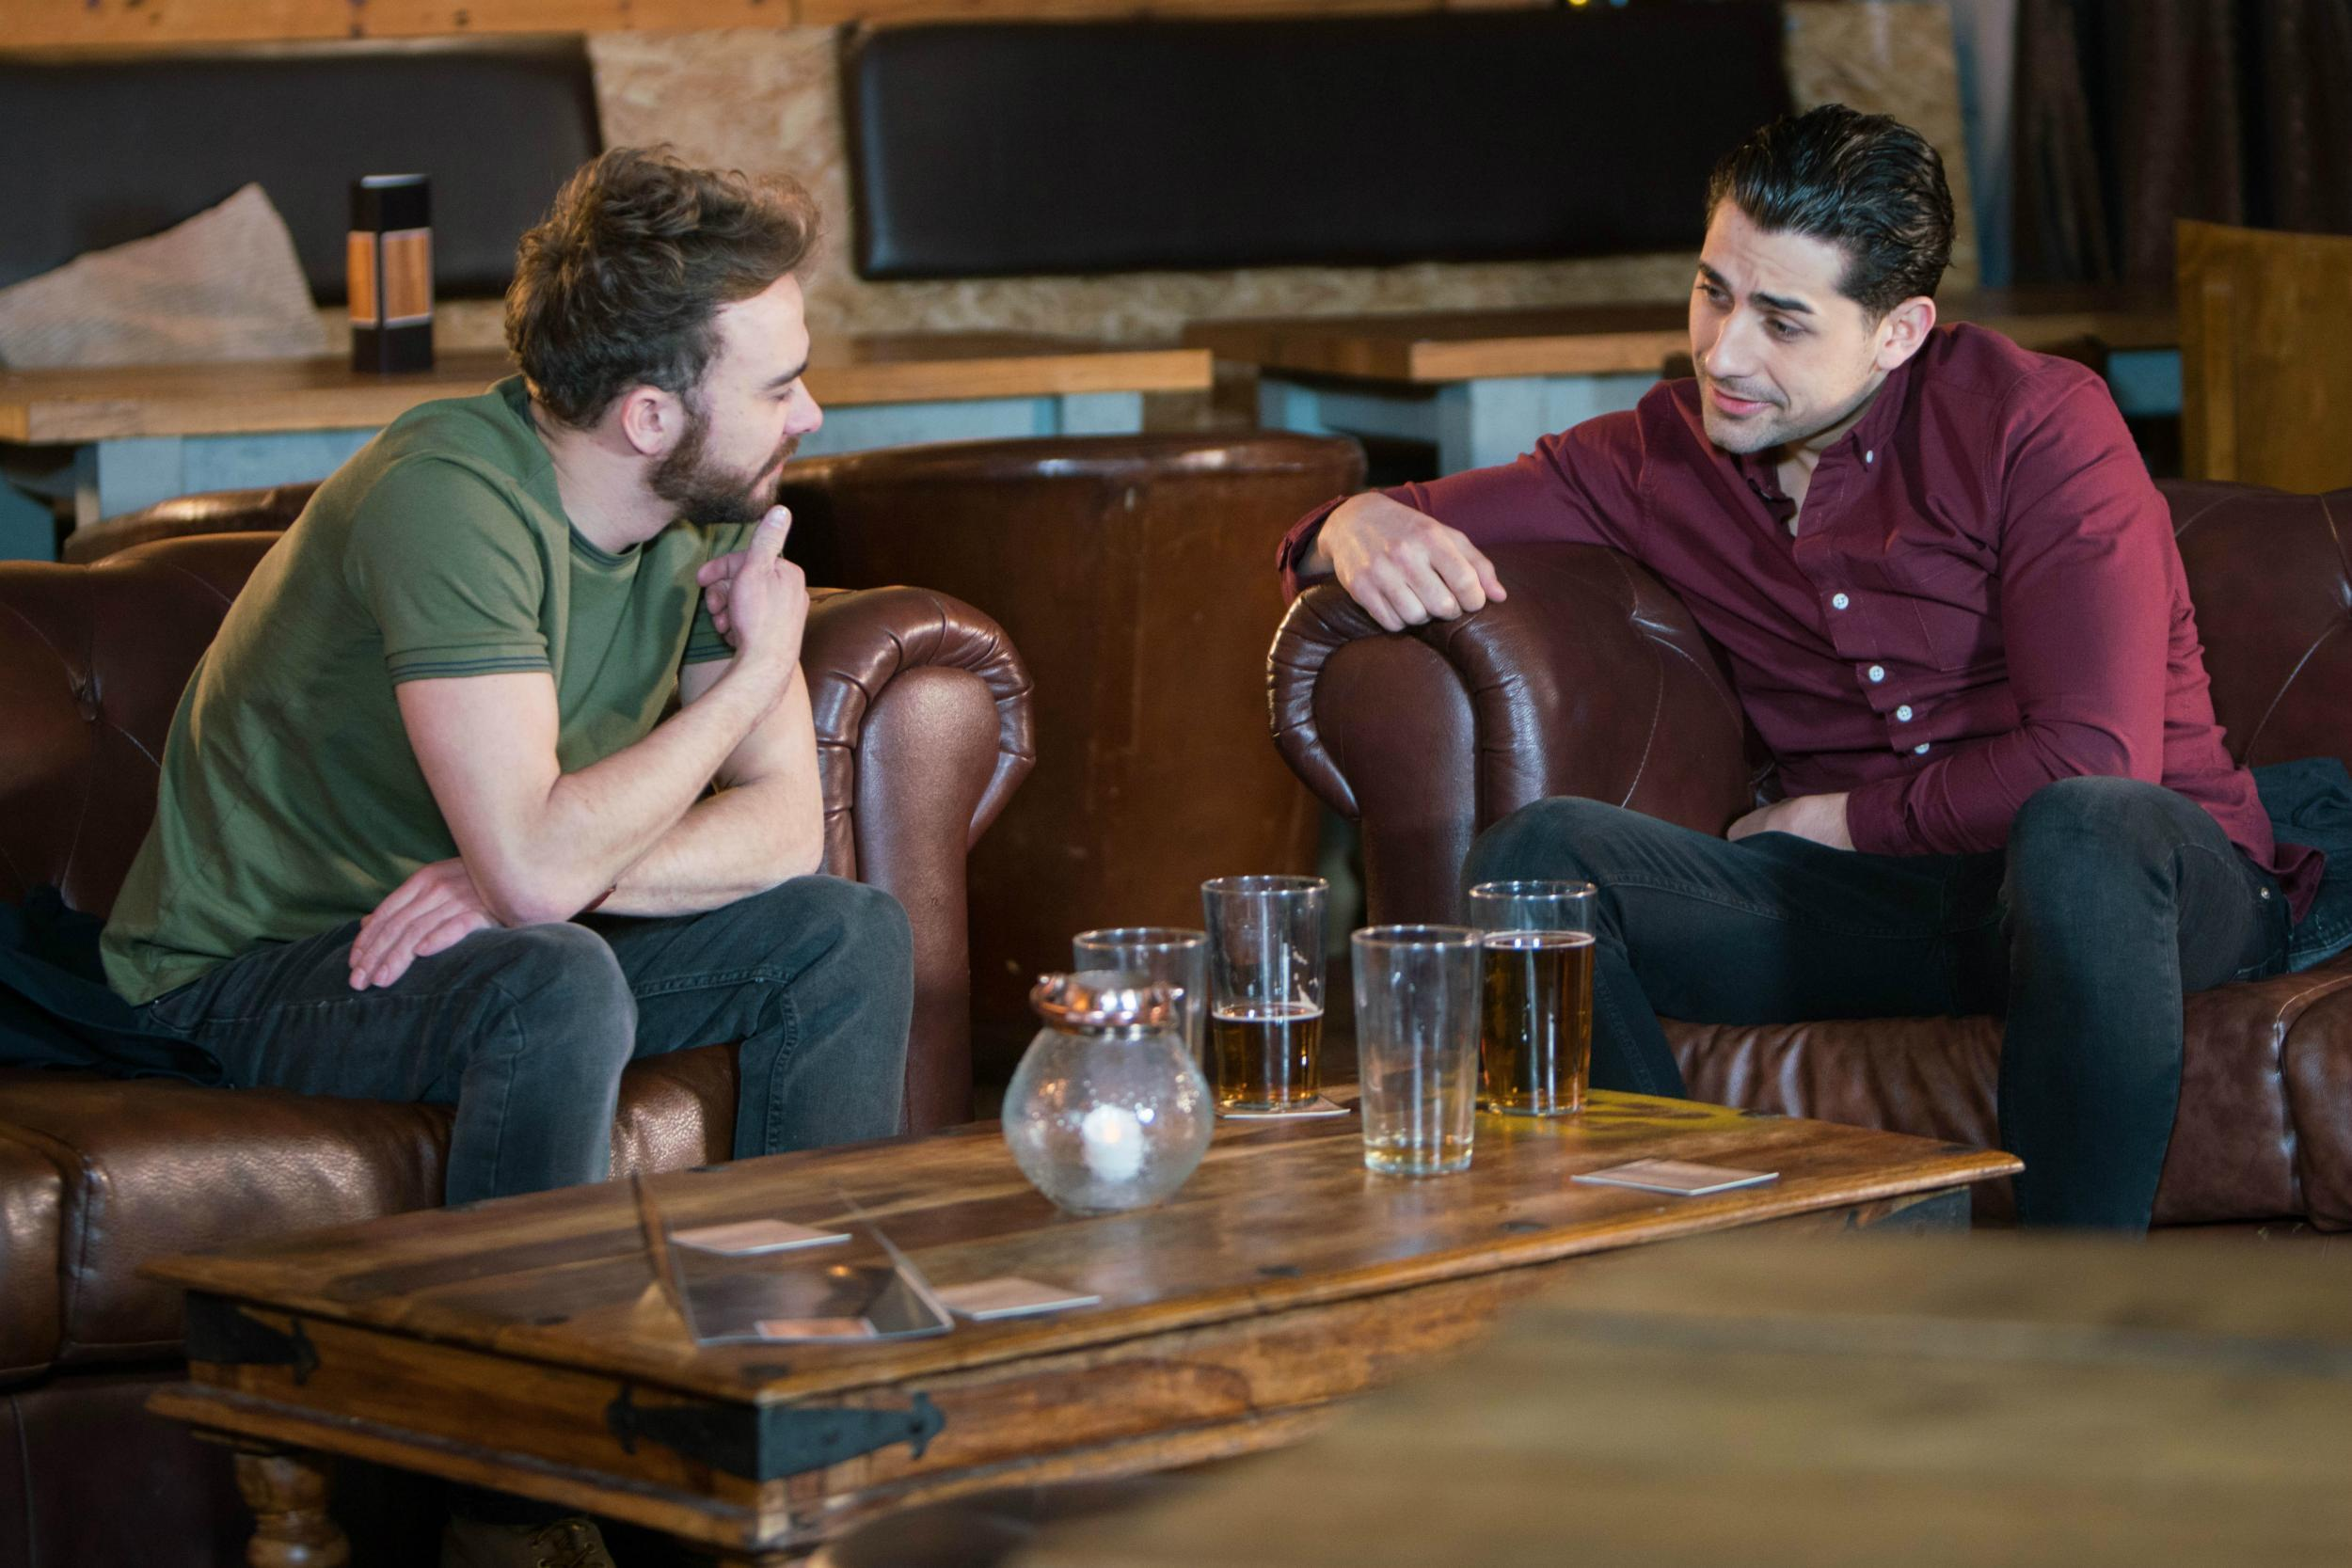 from Eden coronation street gay storyline